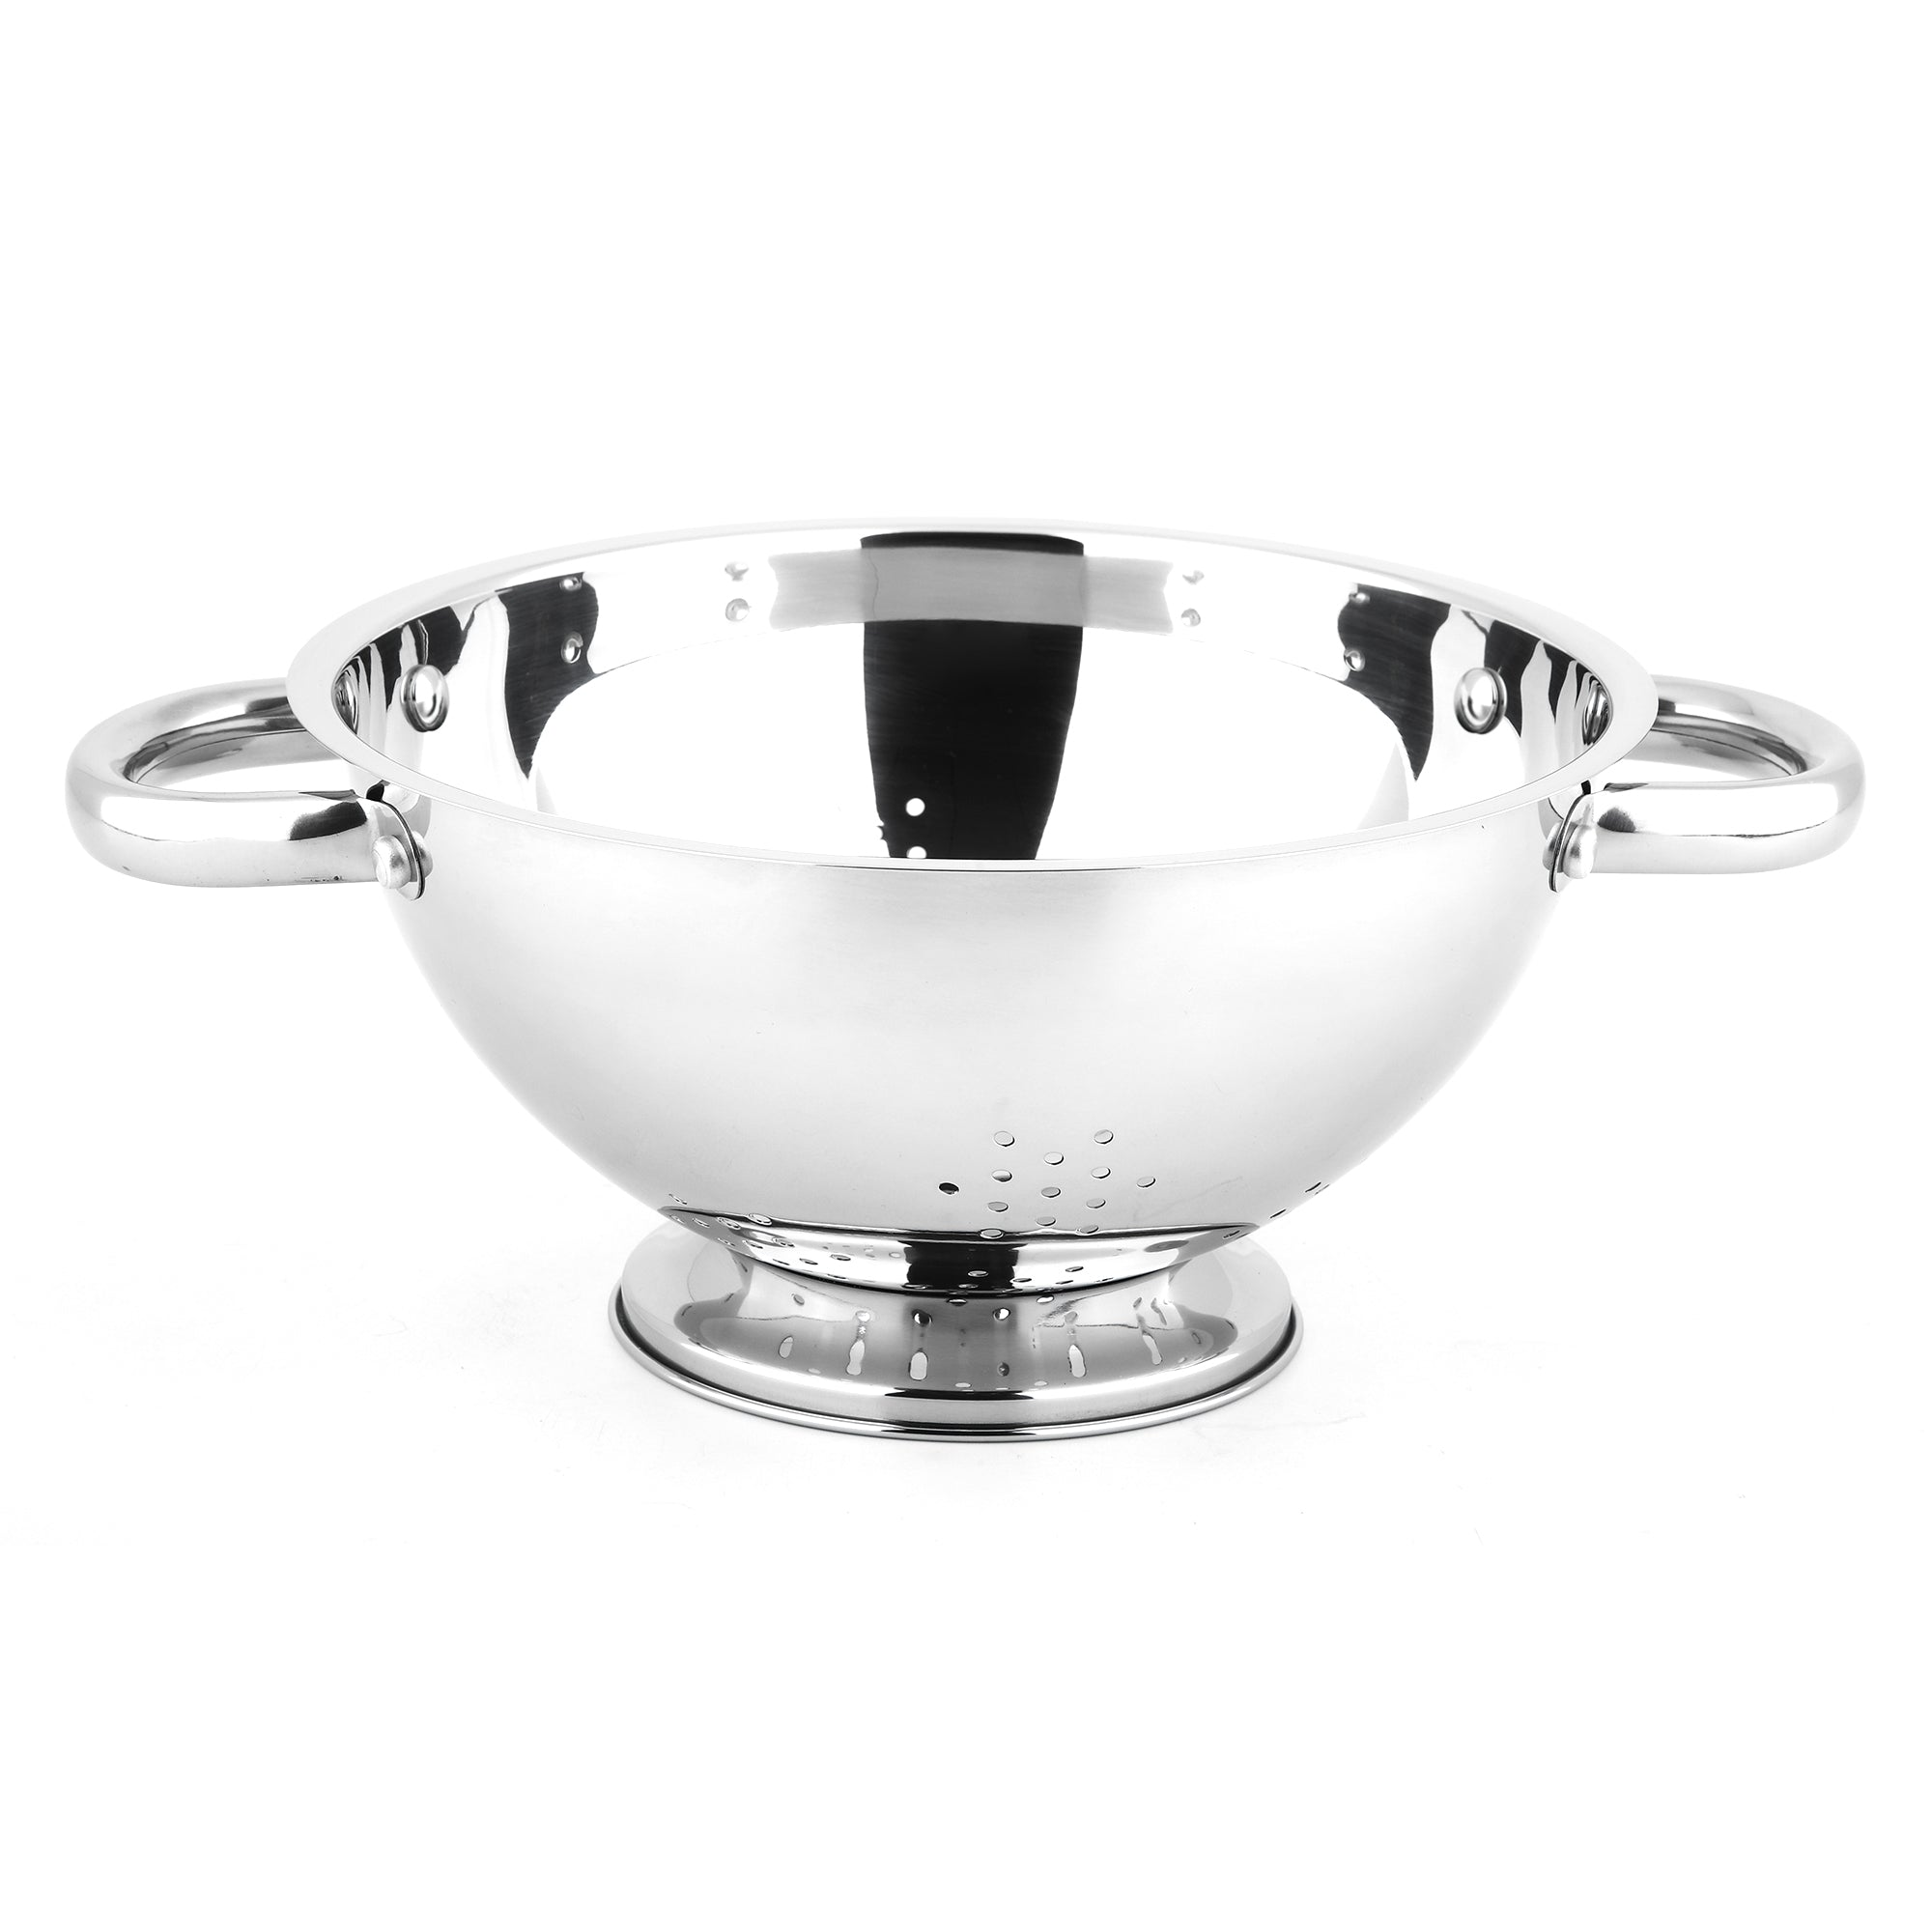 Two-Handled Stainless Steel Colander, 8 3/5 Inch